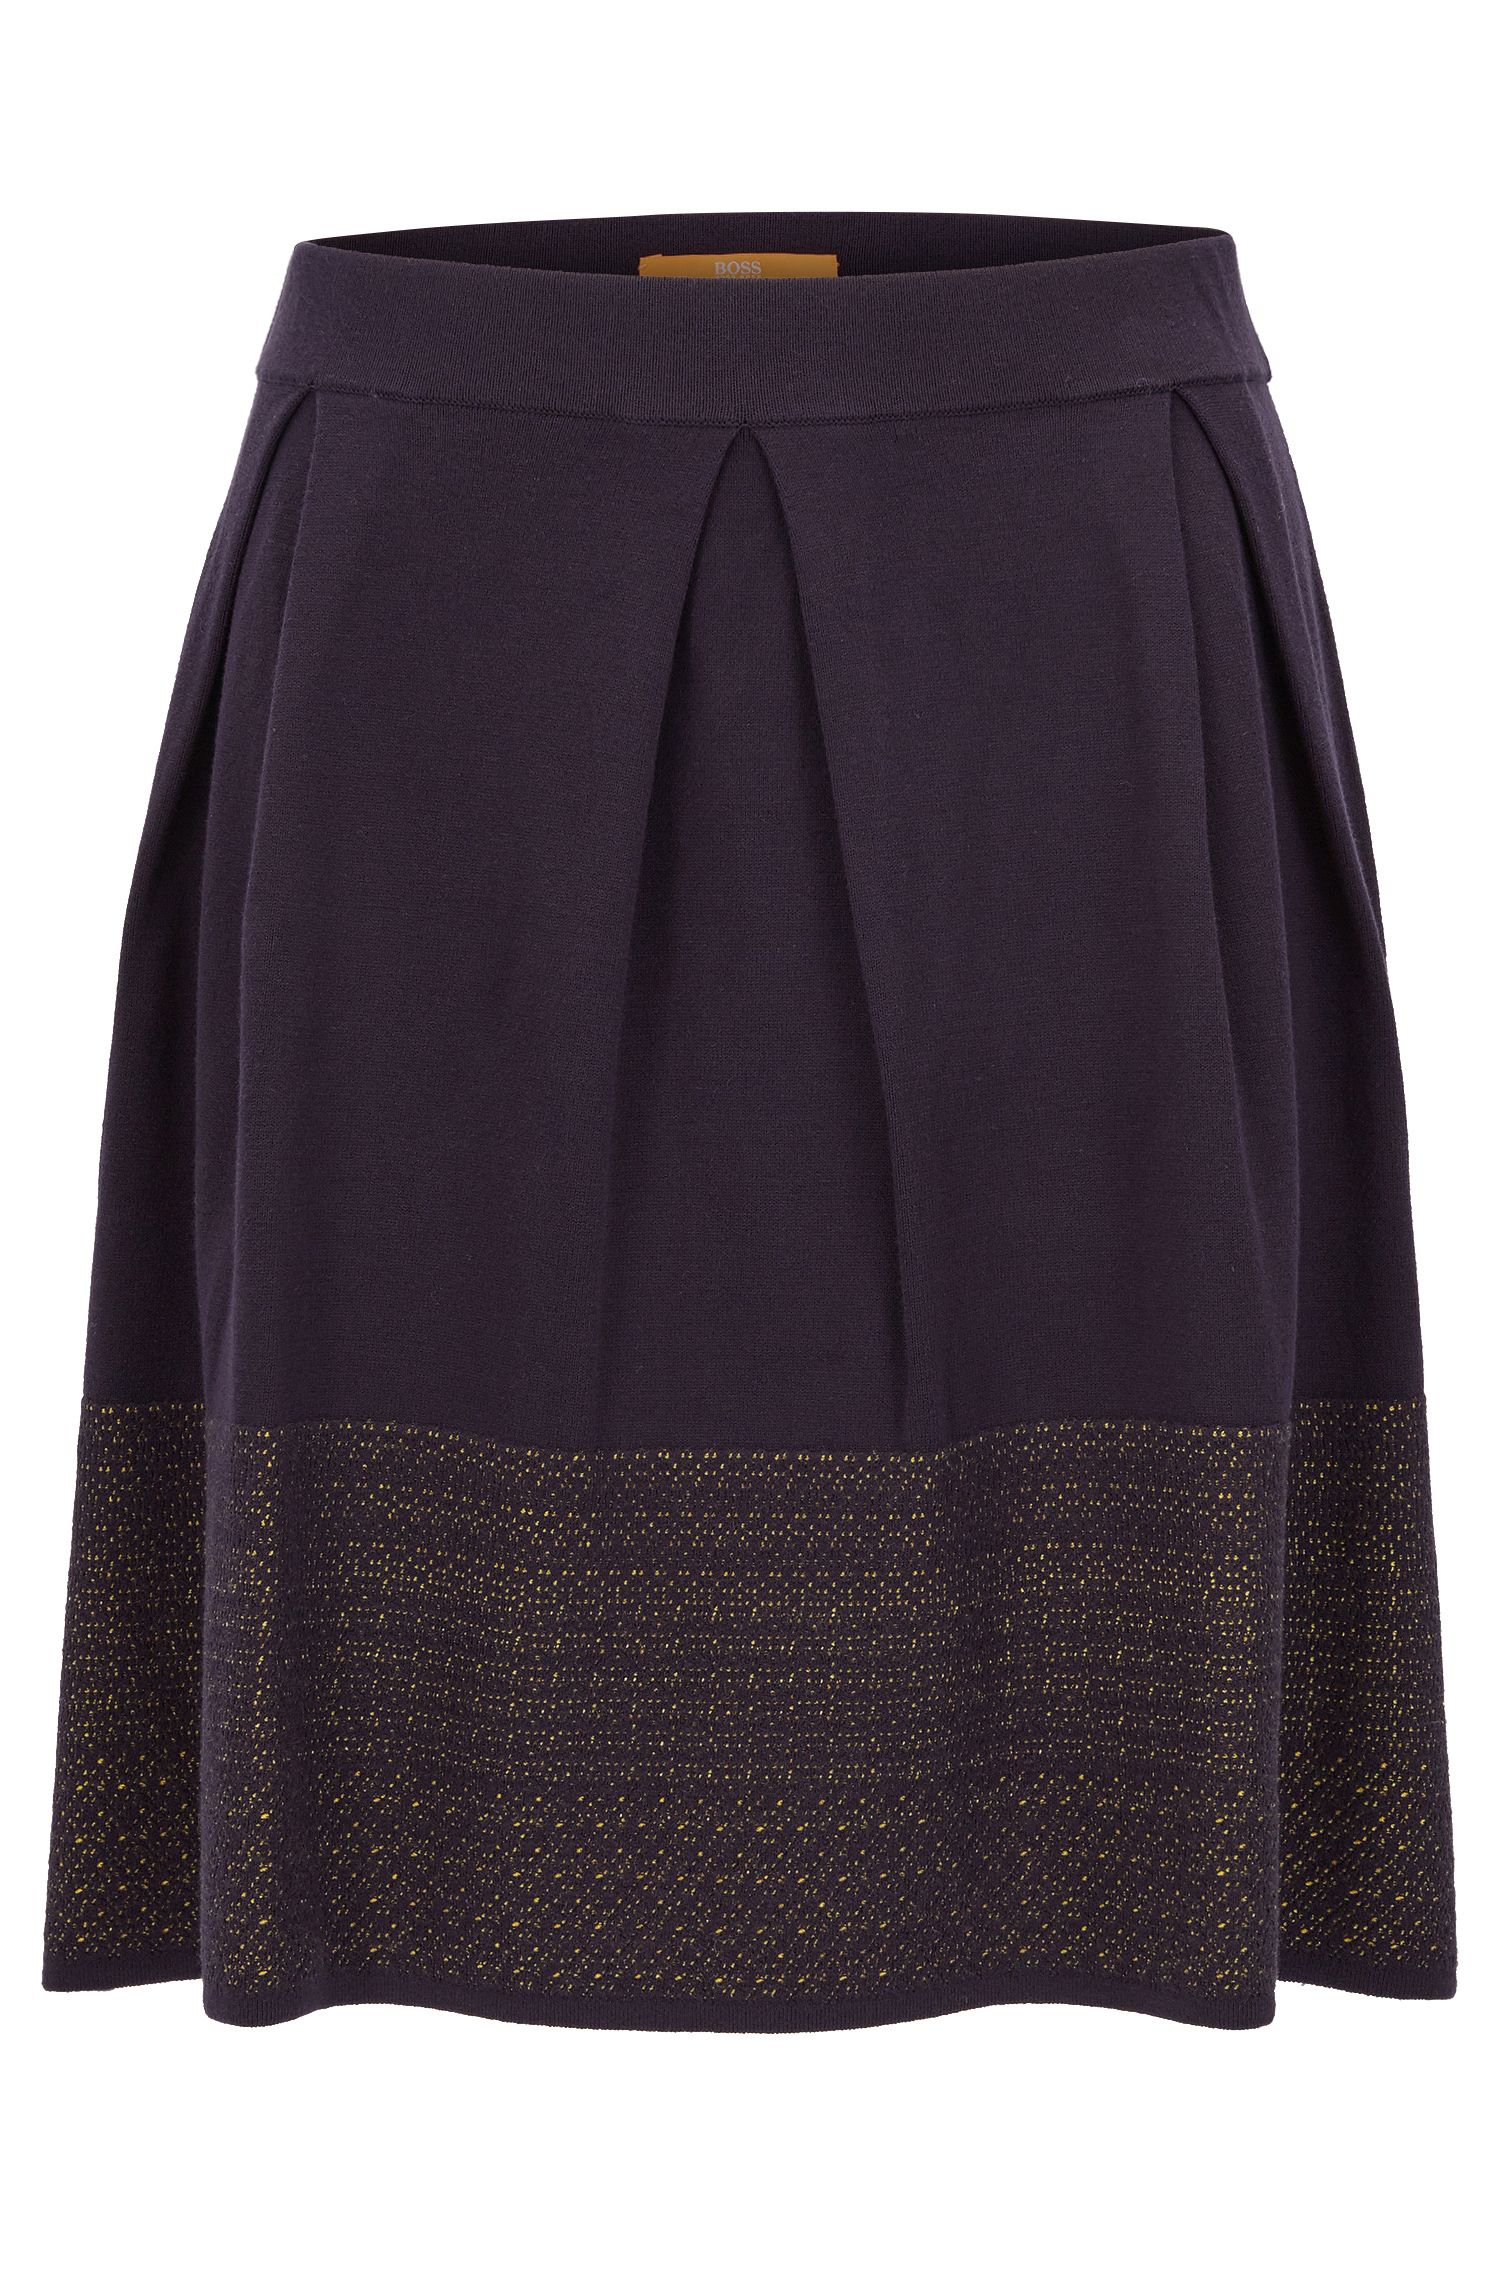 Skater skirt with two-tone jacquard decoration